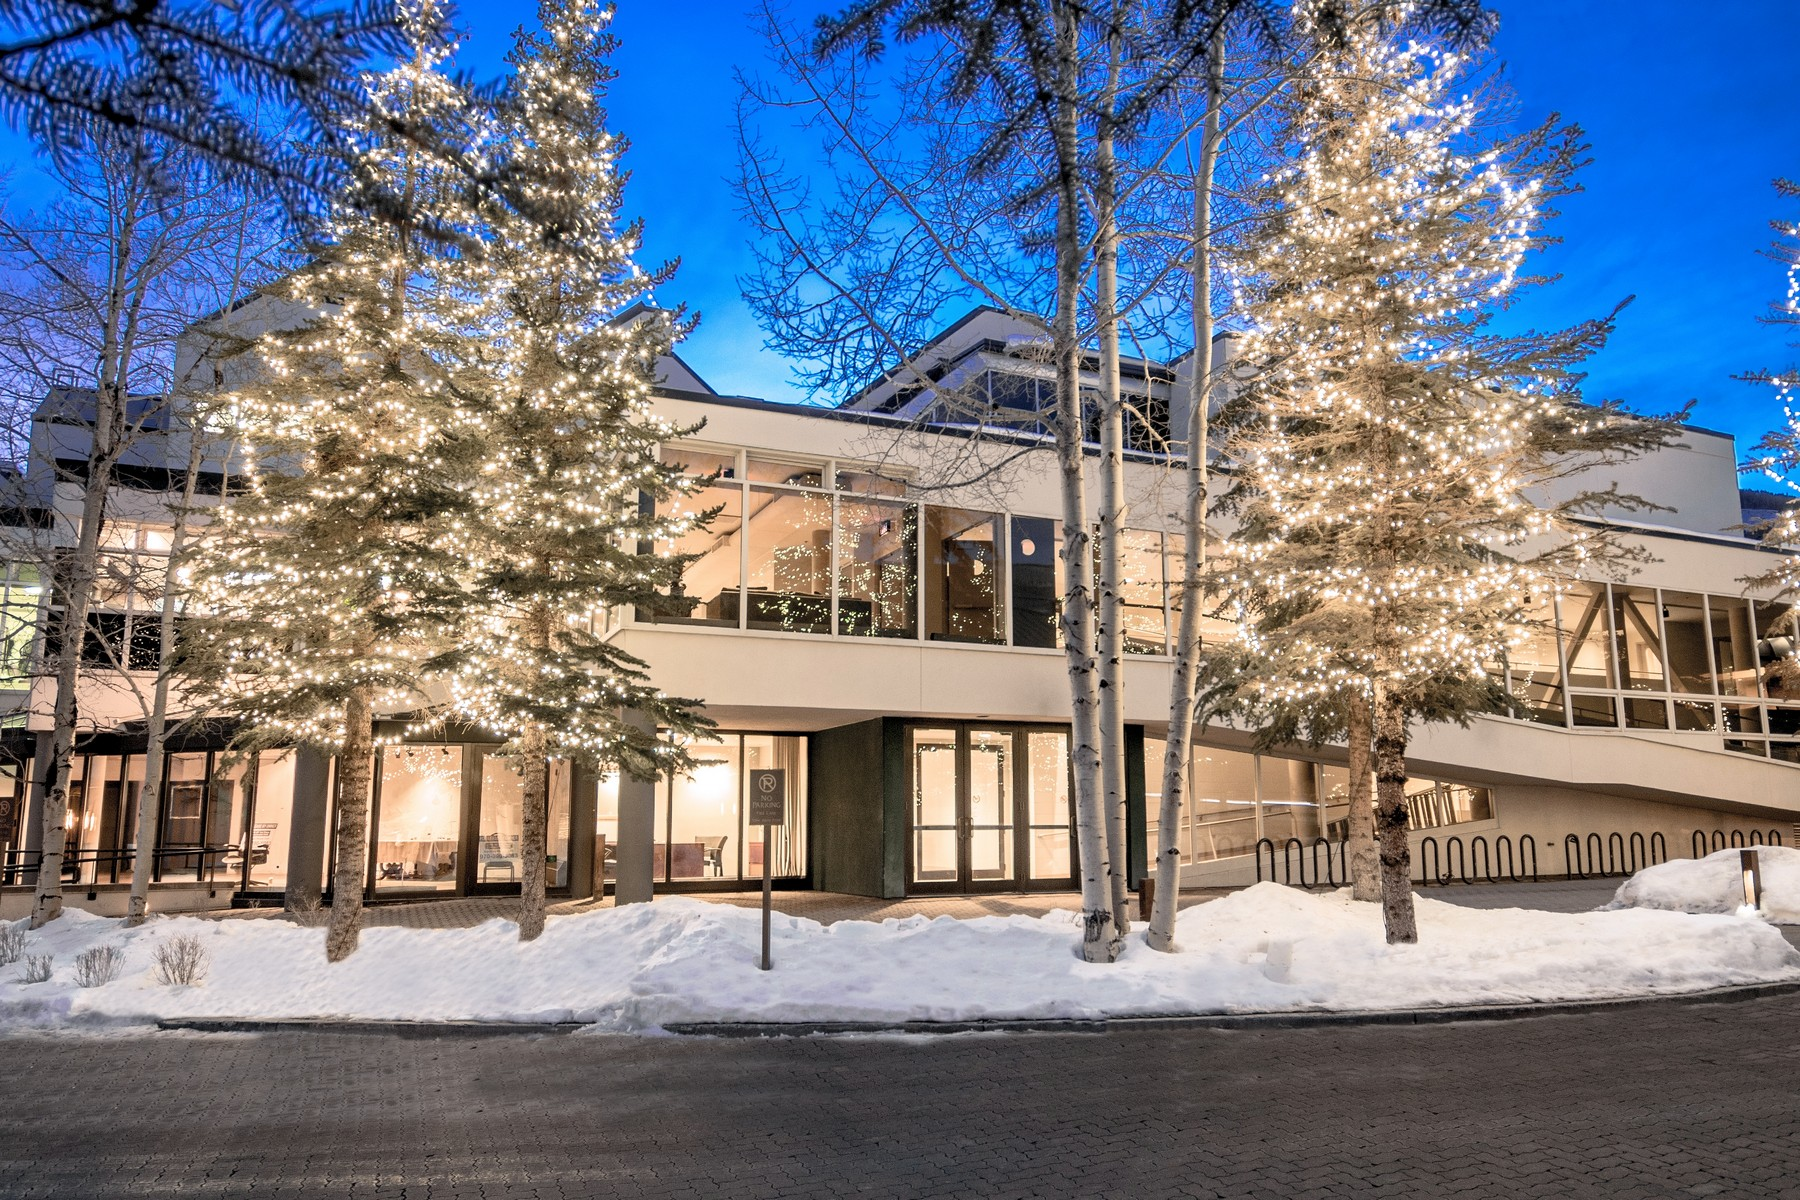 Other Residential for Sale at Cascade Mountain Center 1310 Westhaven Drive, Cascade Village, Vail, Colorado, 81657 United States